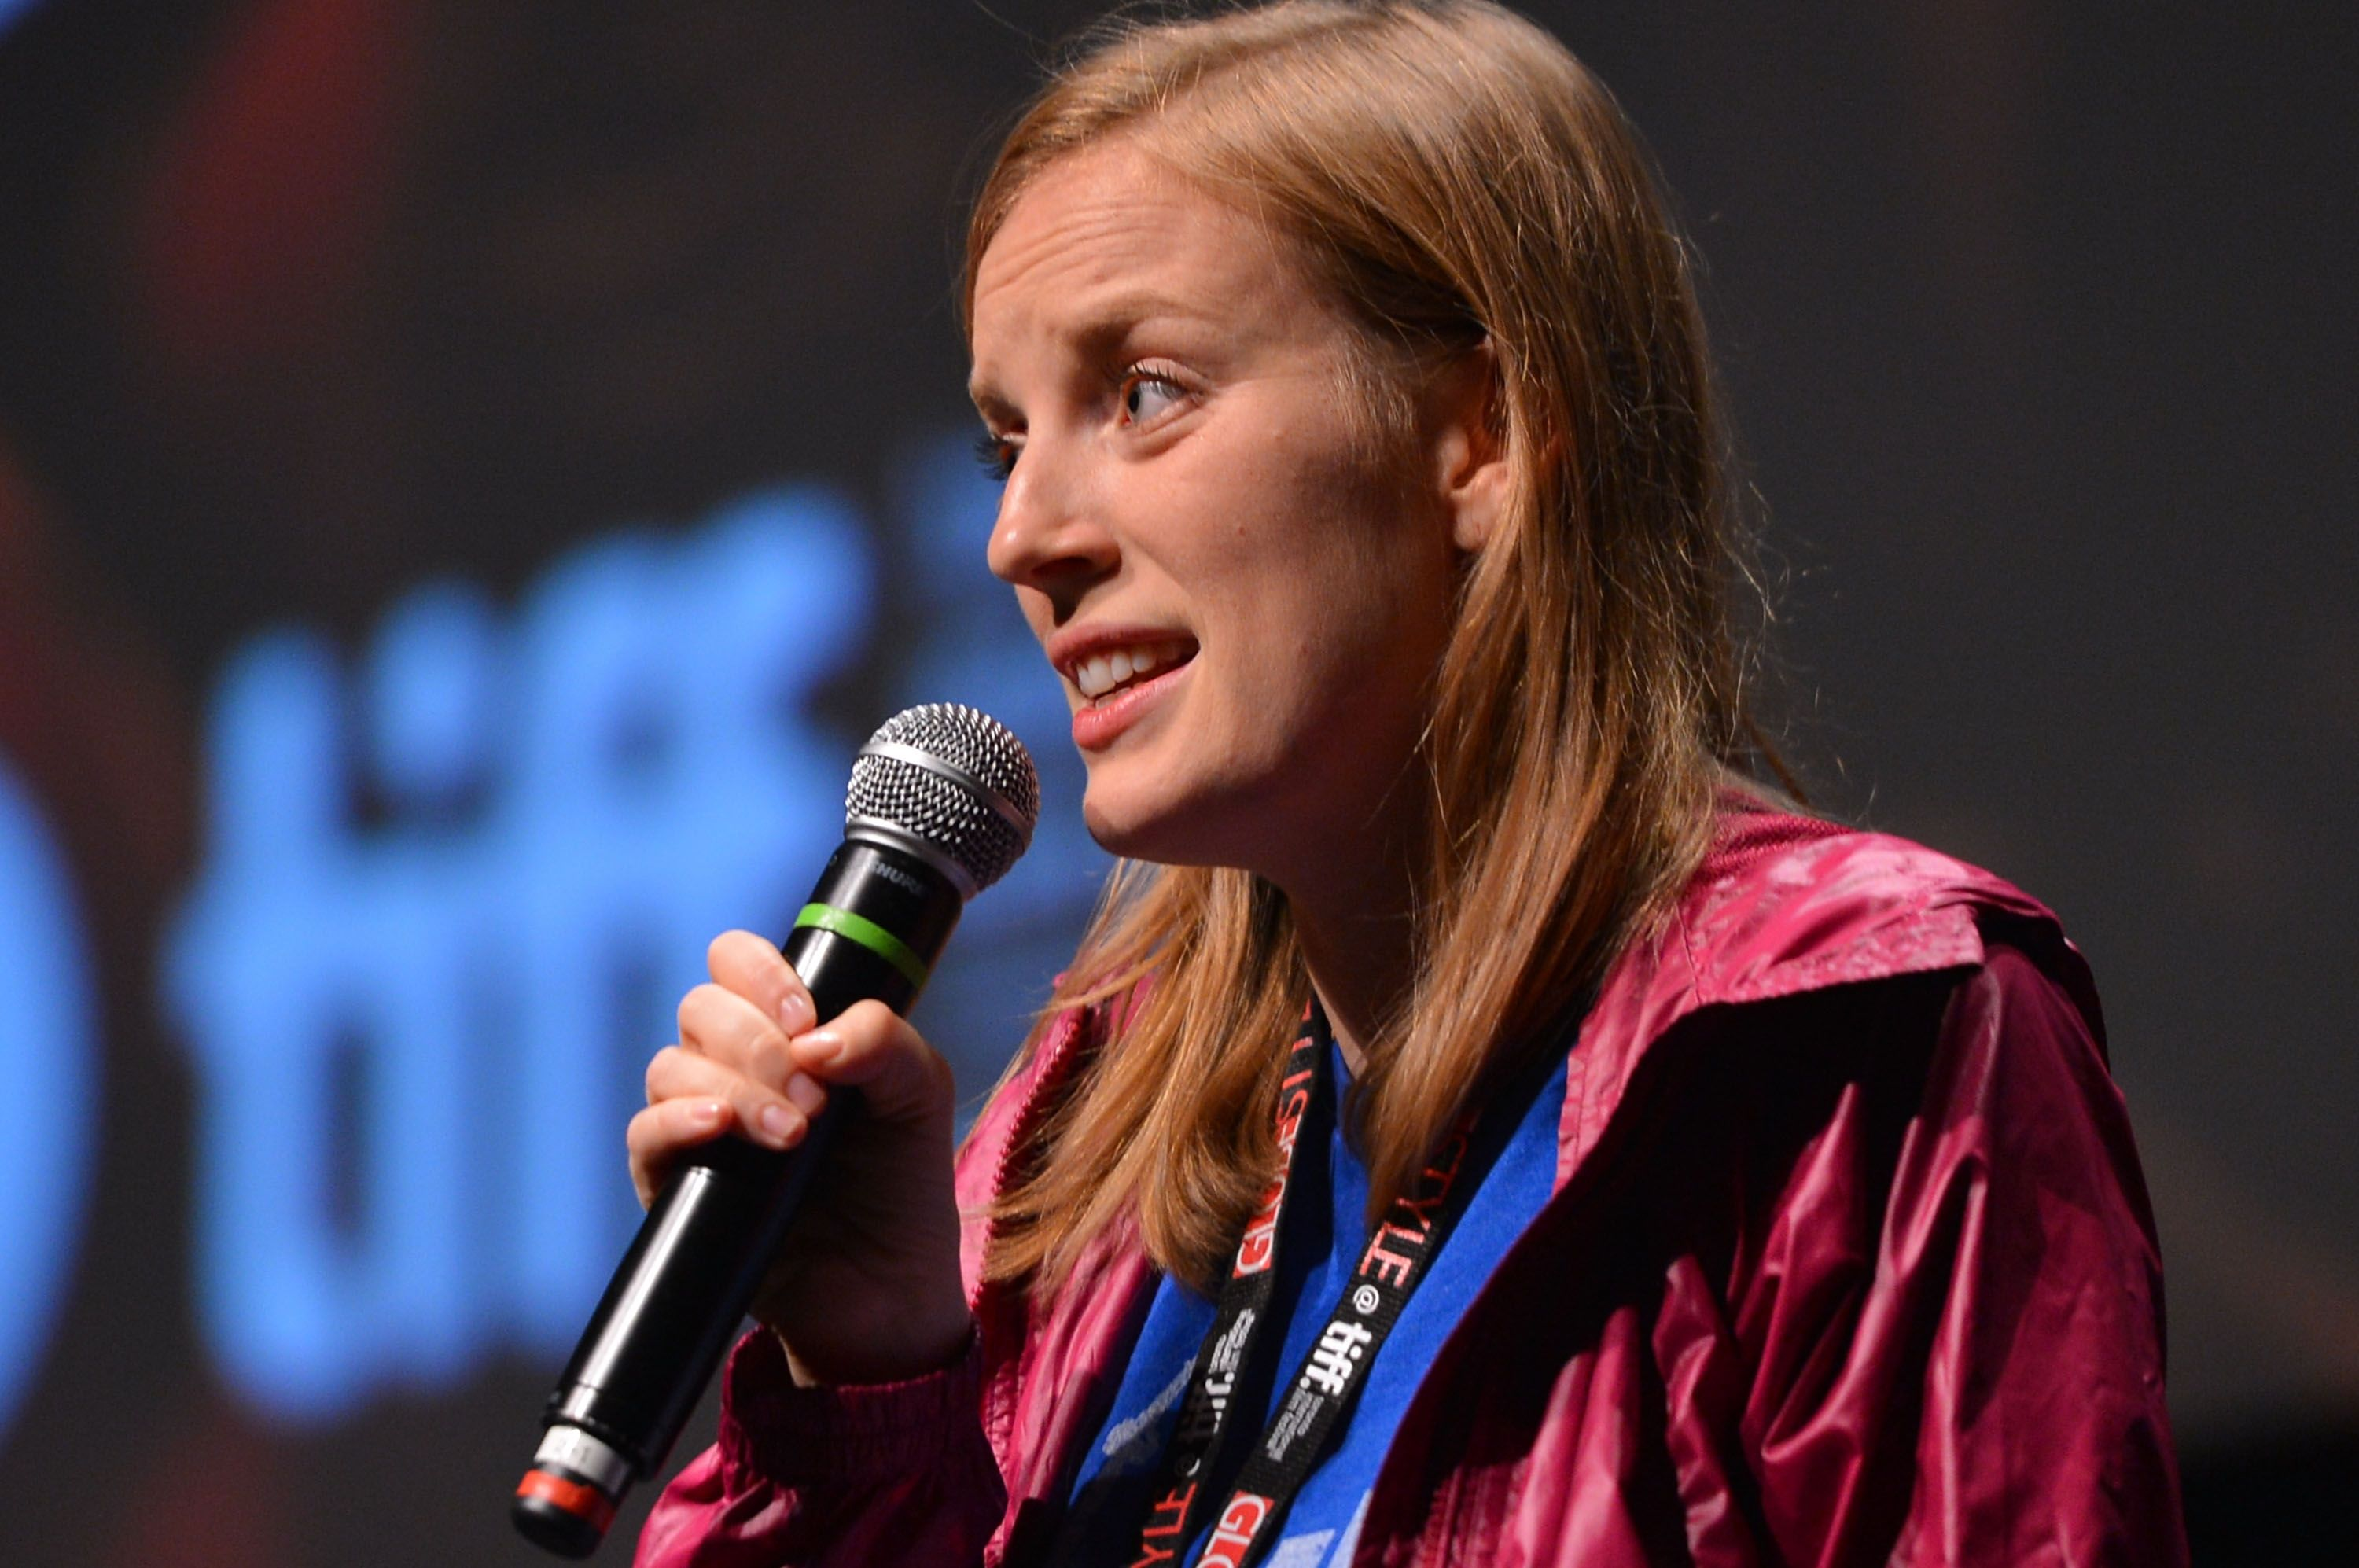 Sarah Polley at the screening of her film STORIES WE TELL